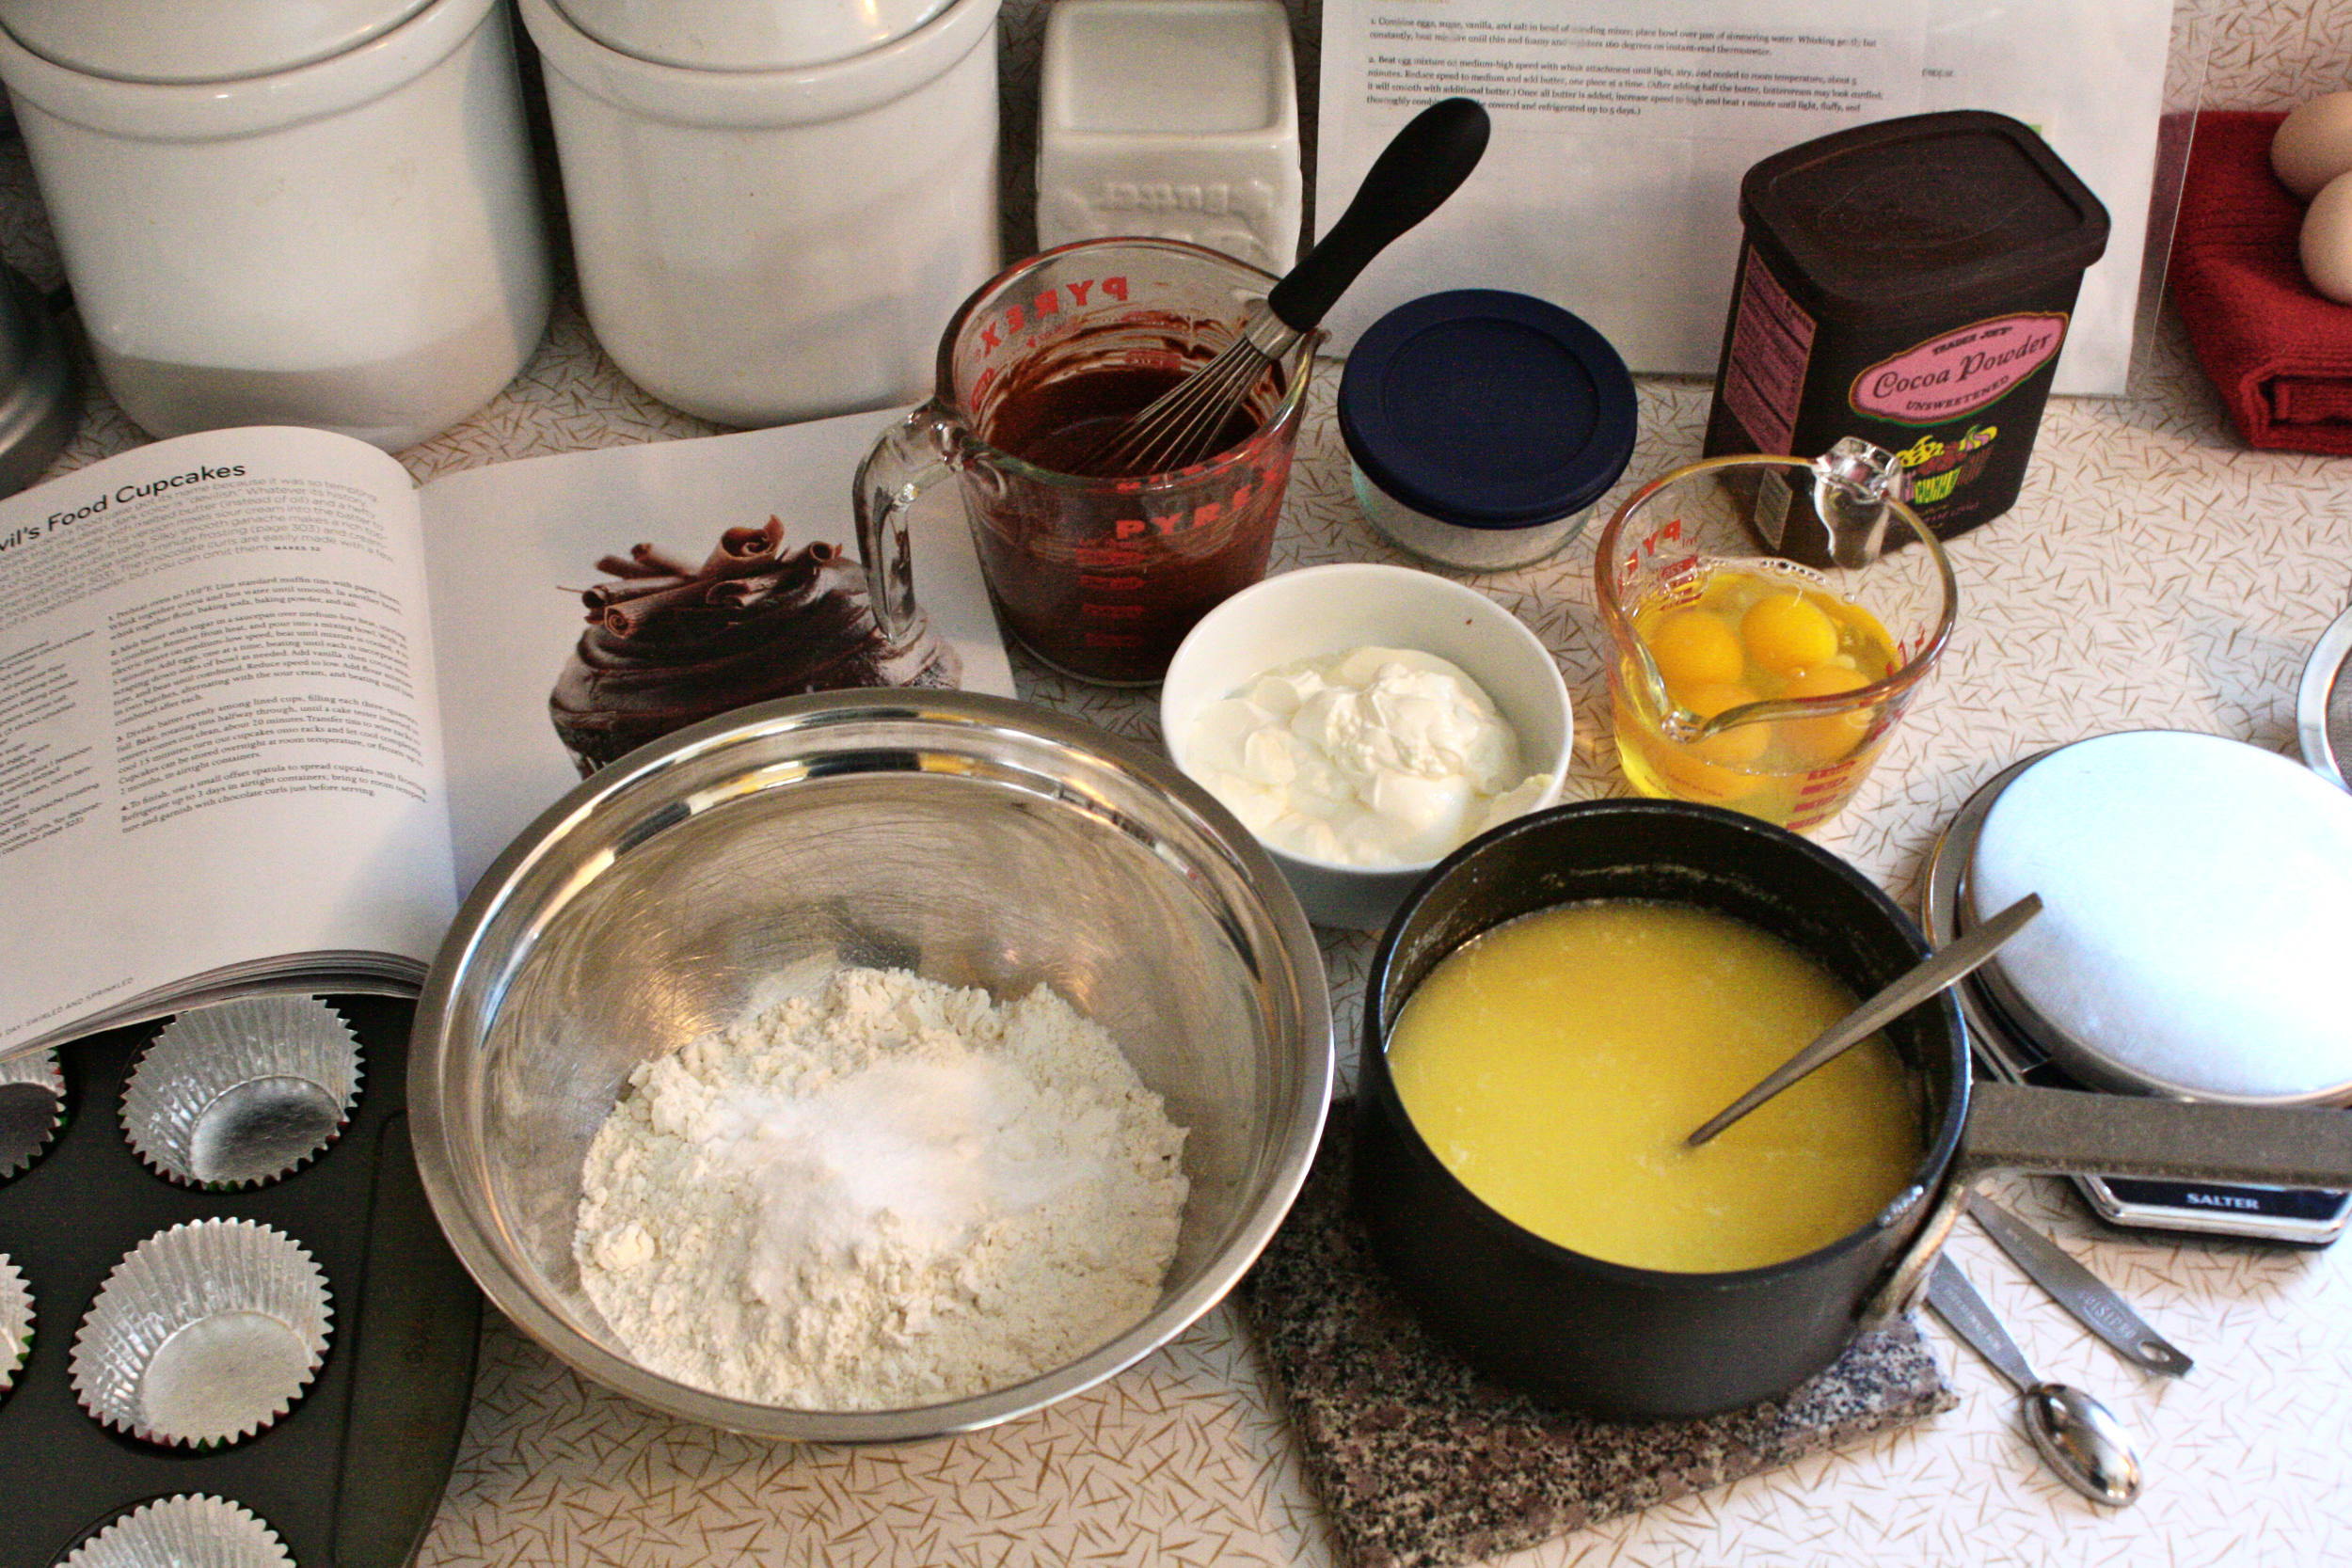 Butter & sugar melted together. Cocoa powder & boiling water whisked. Eggs ready to be added one at a time.